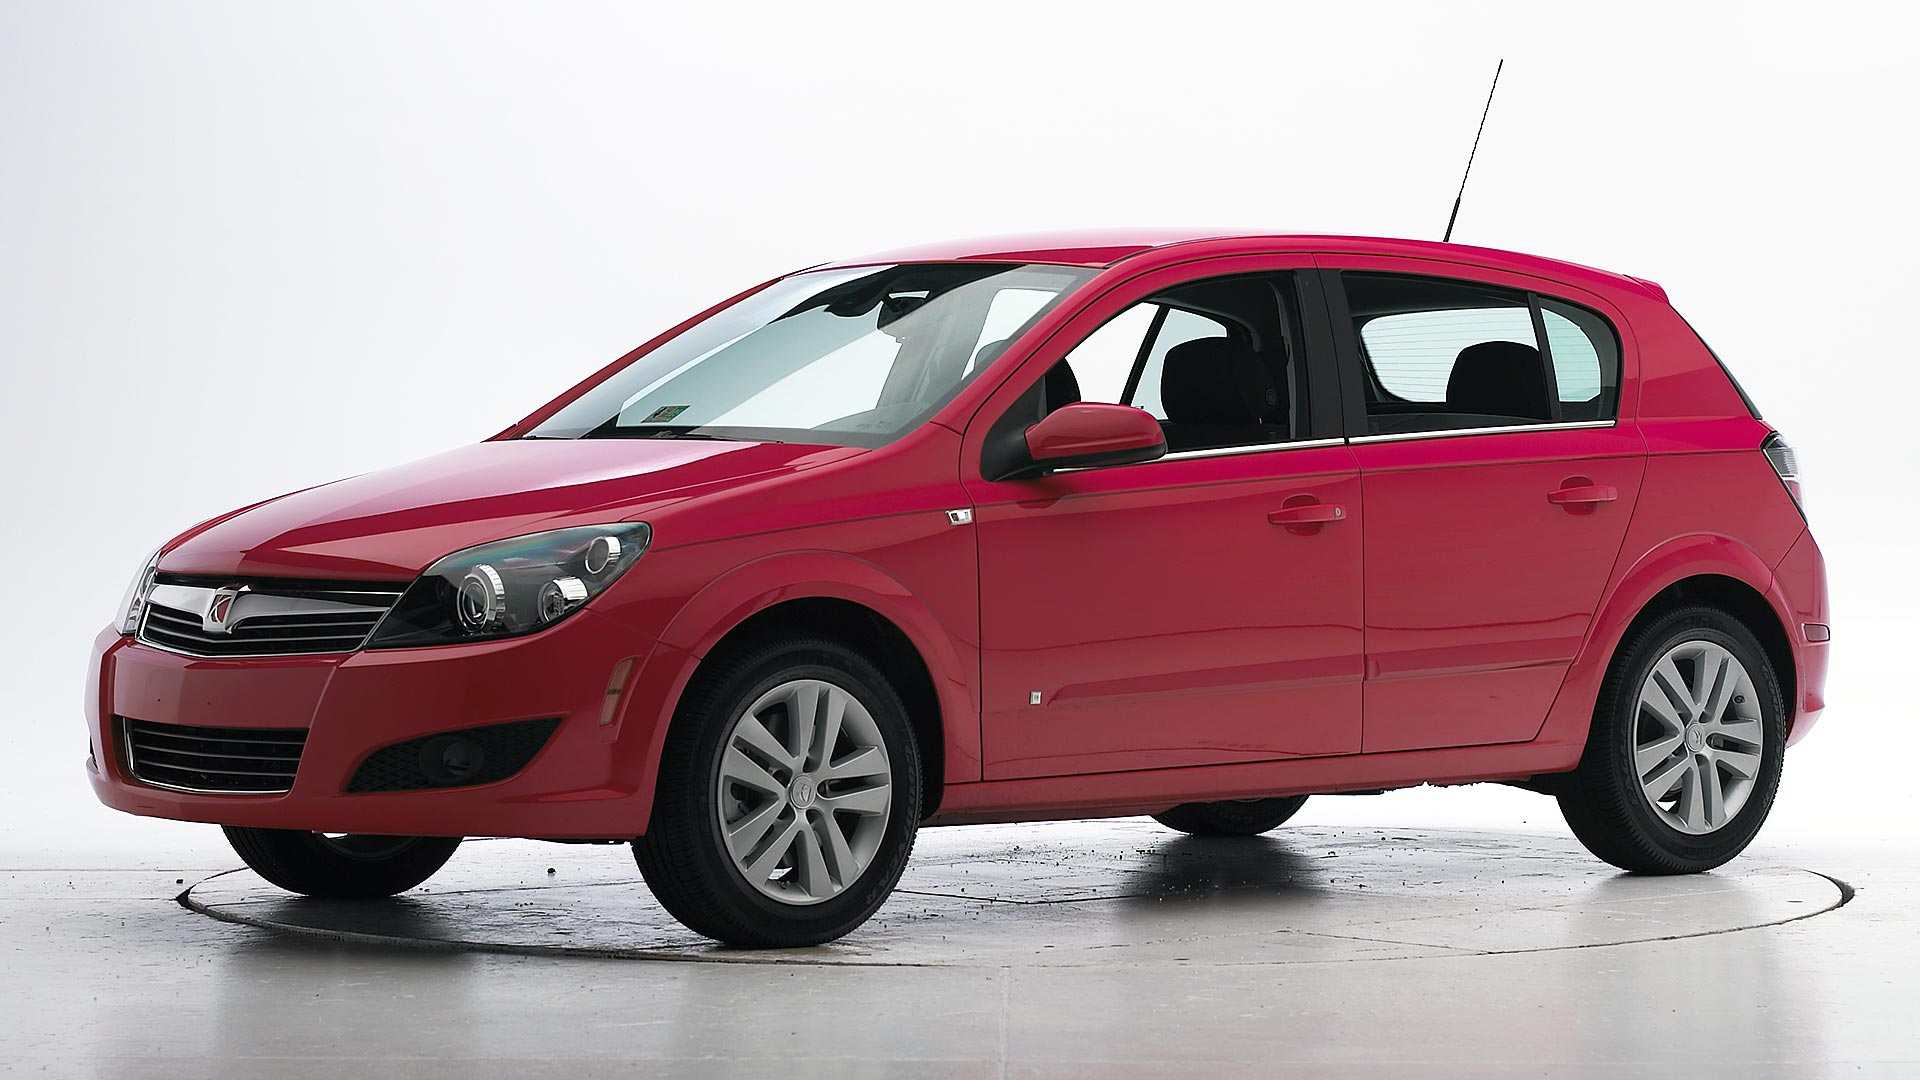 2008 Saturn Astra 4-door hatchback